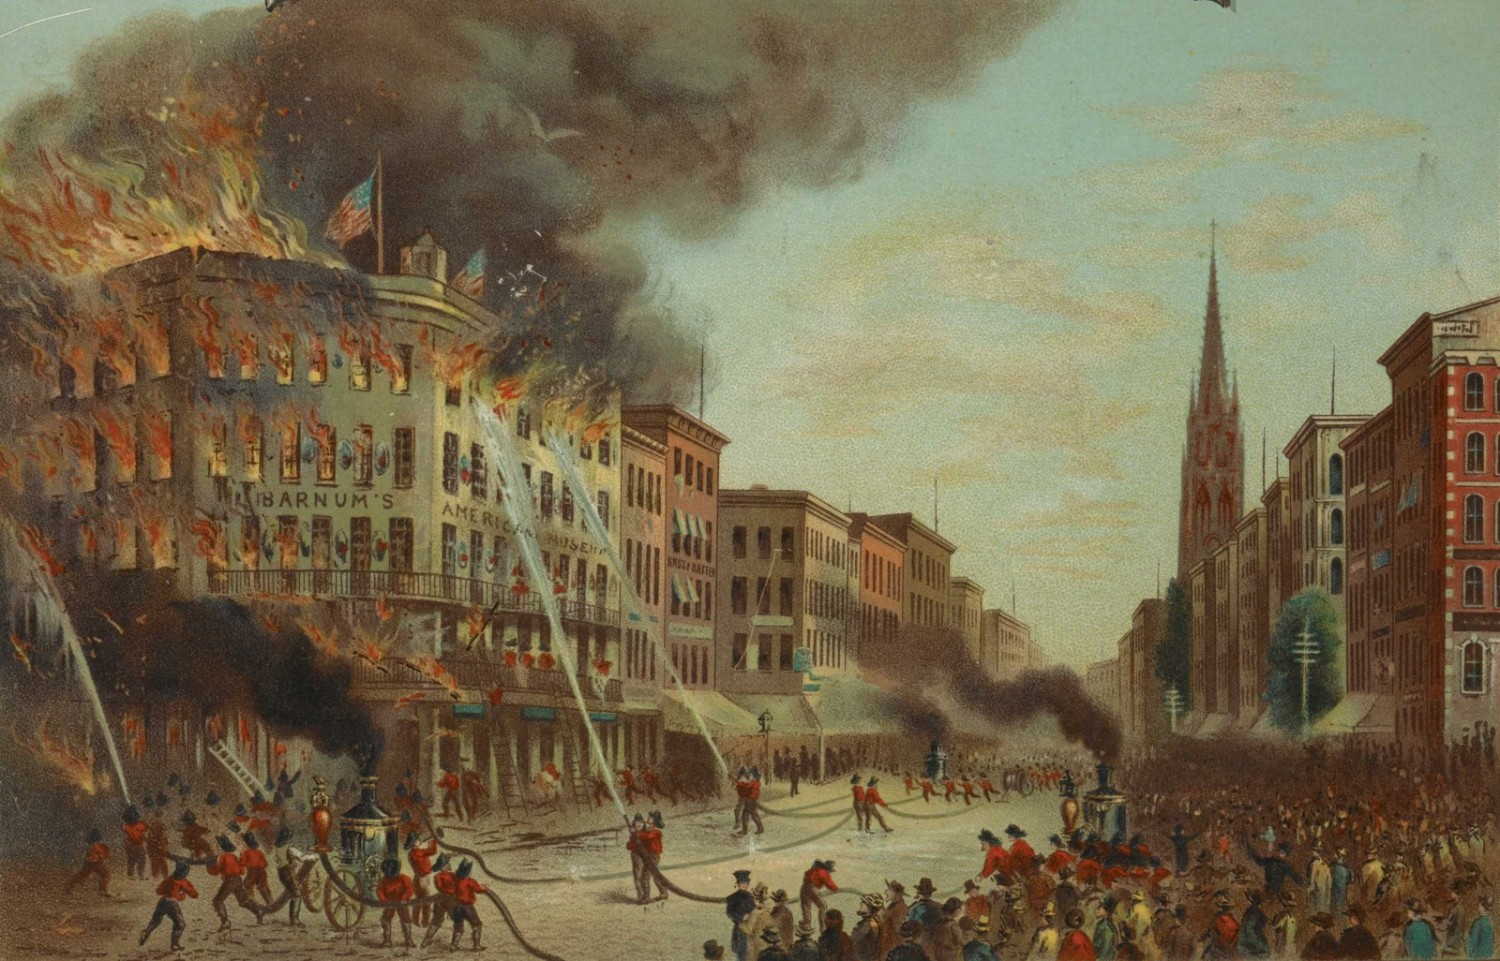 Burning of Barnum's Museum